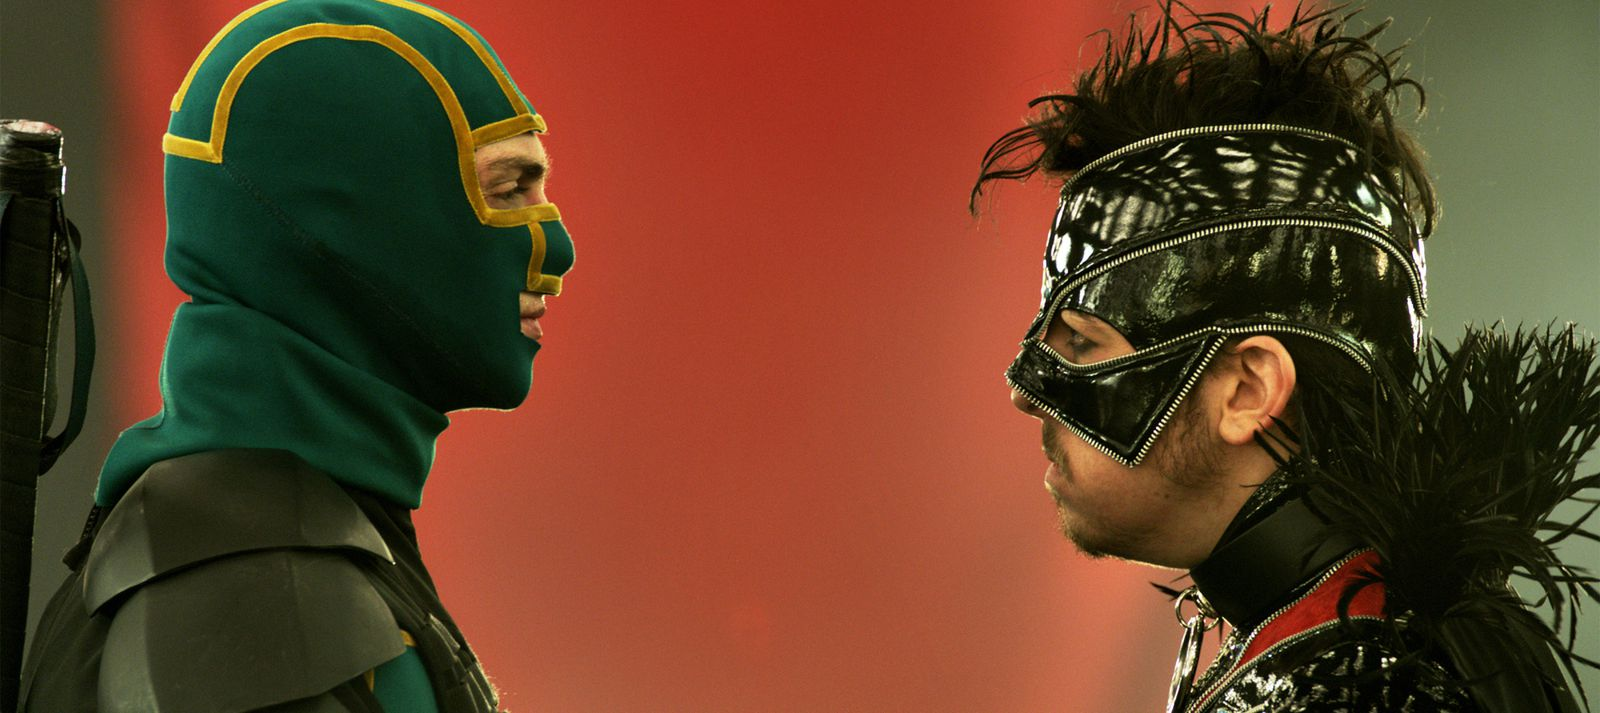 [critique] Kick-Ass 2